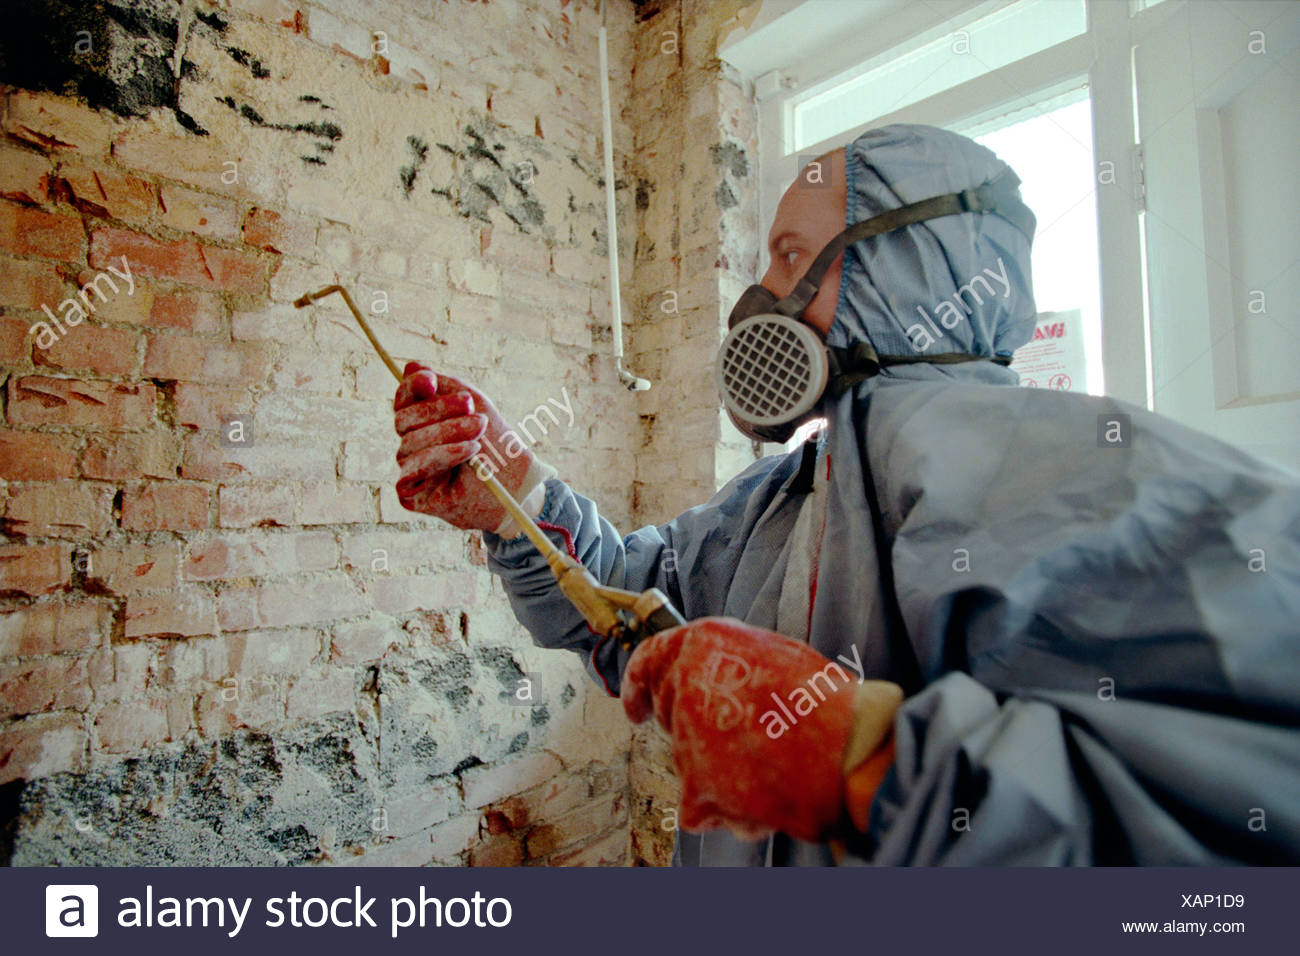 Damp Proofing Applying chemical treatments with a spray gun - Stock Image